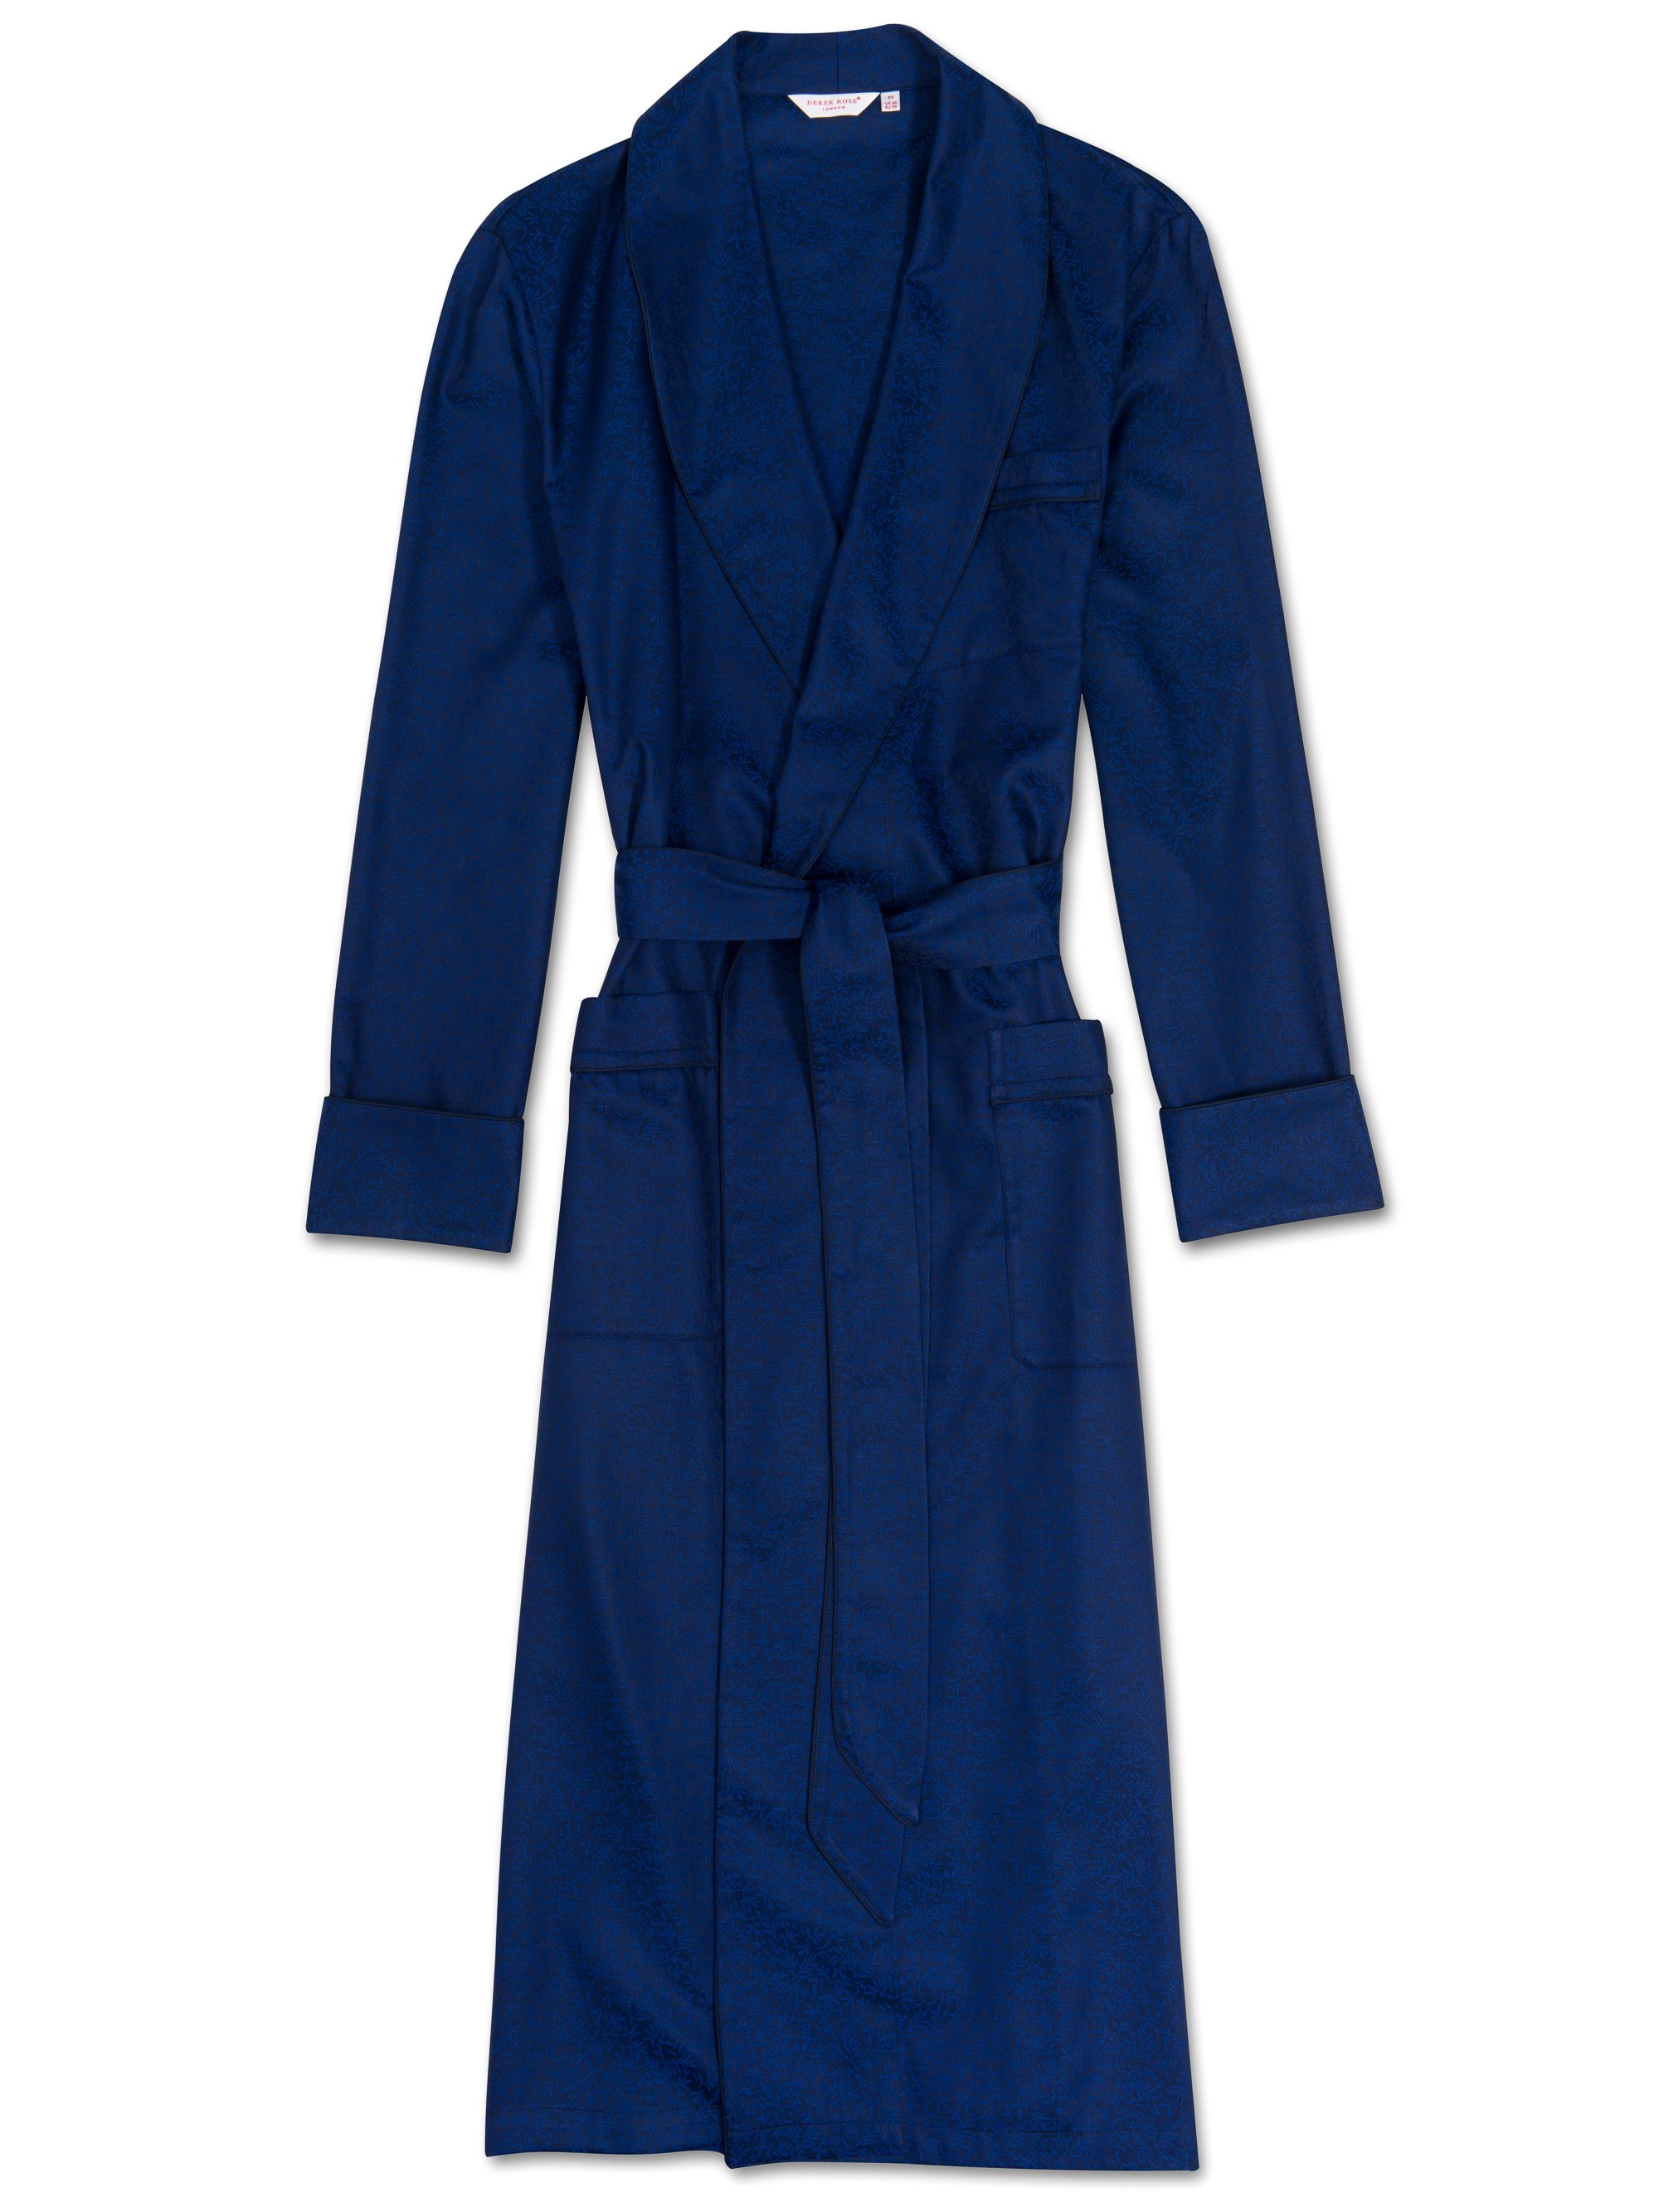 Men's Piped Dressing Gown Paris 7 Cotton Jacquard Cobalt